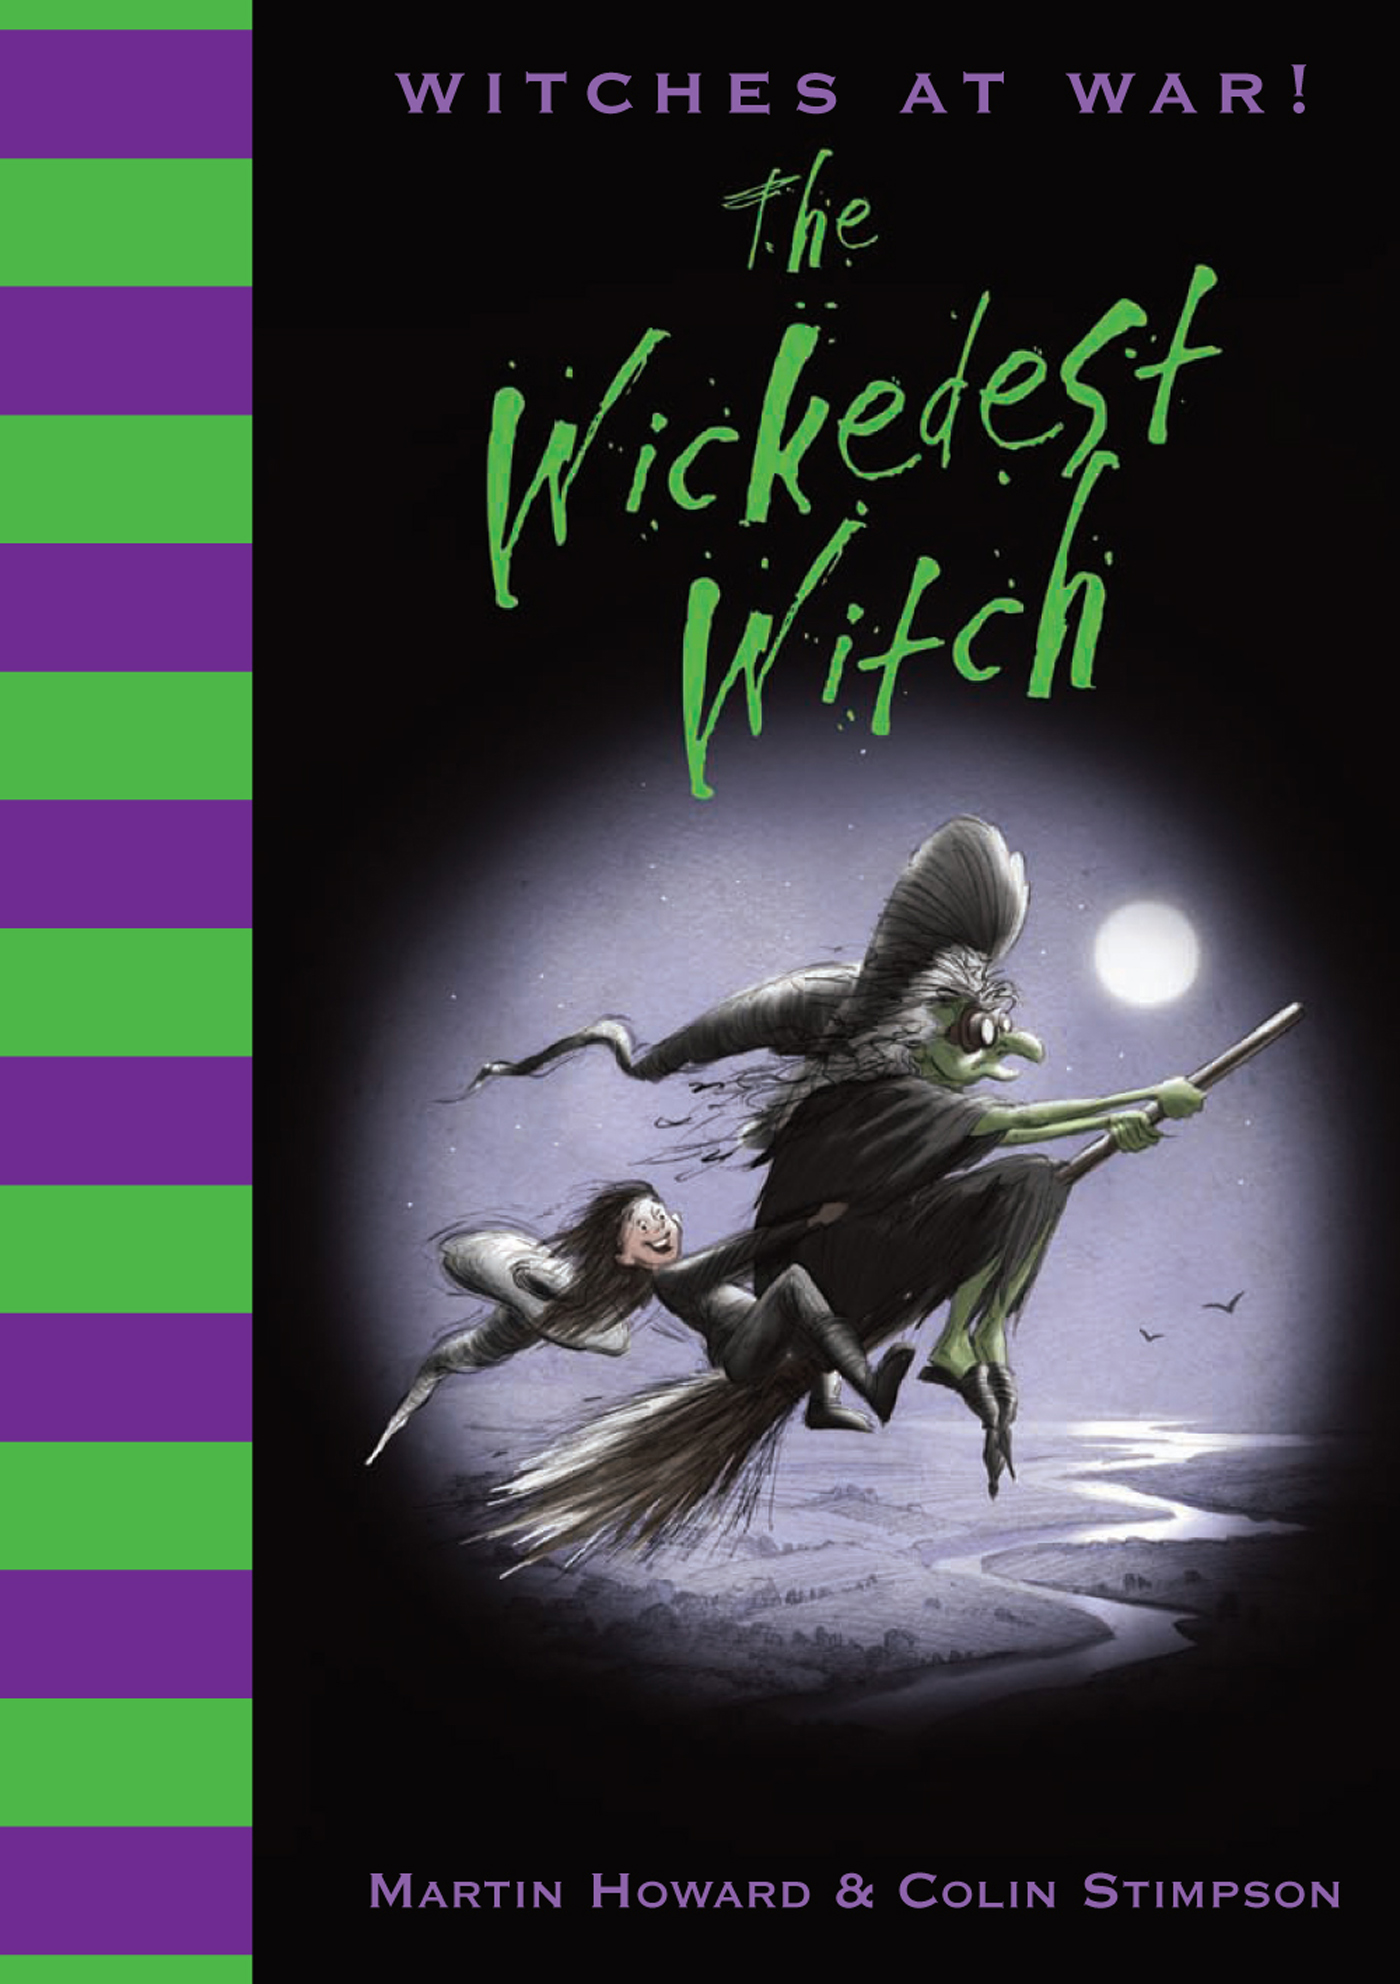 Witches at War!: The Wickedest Witch